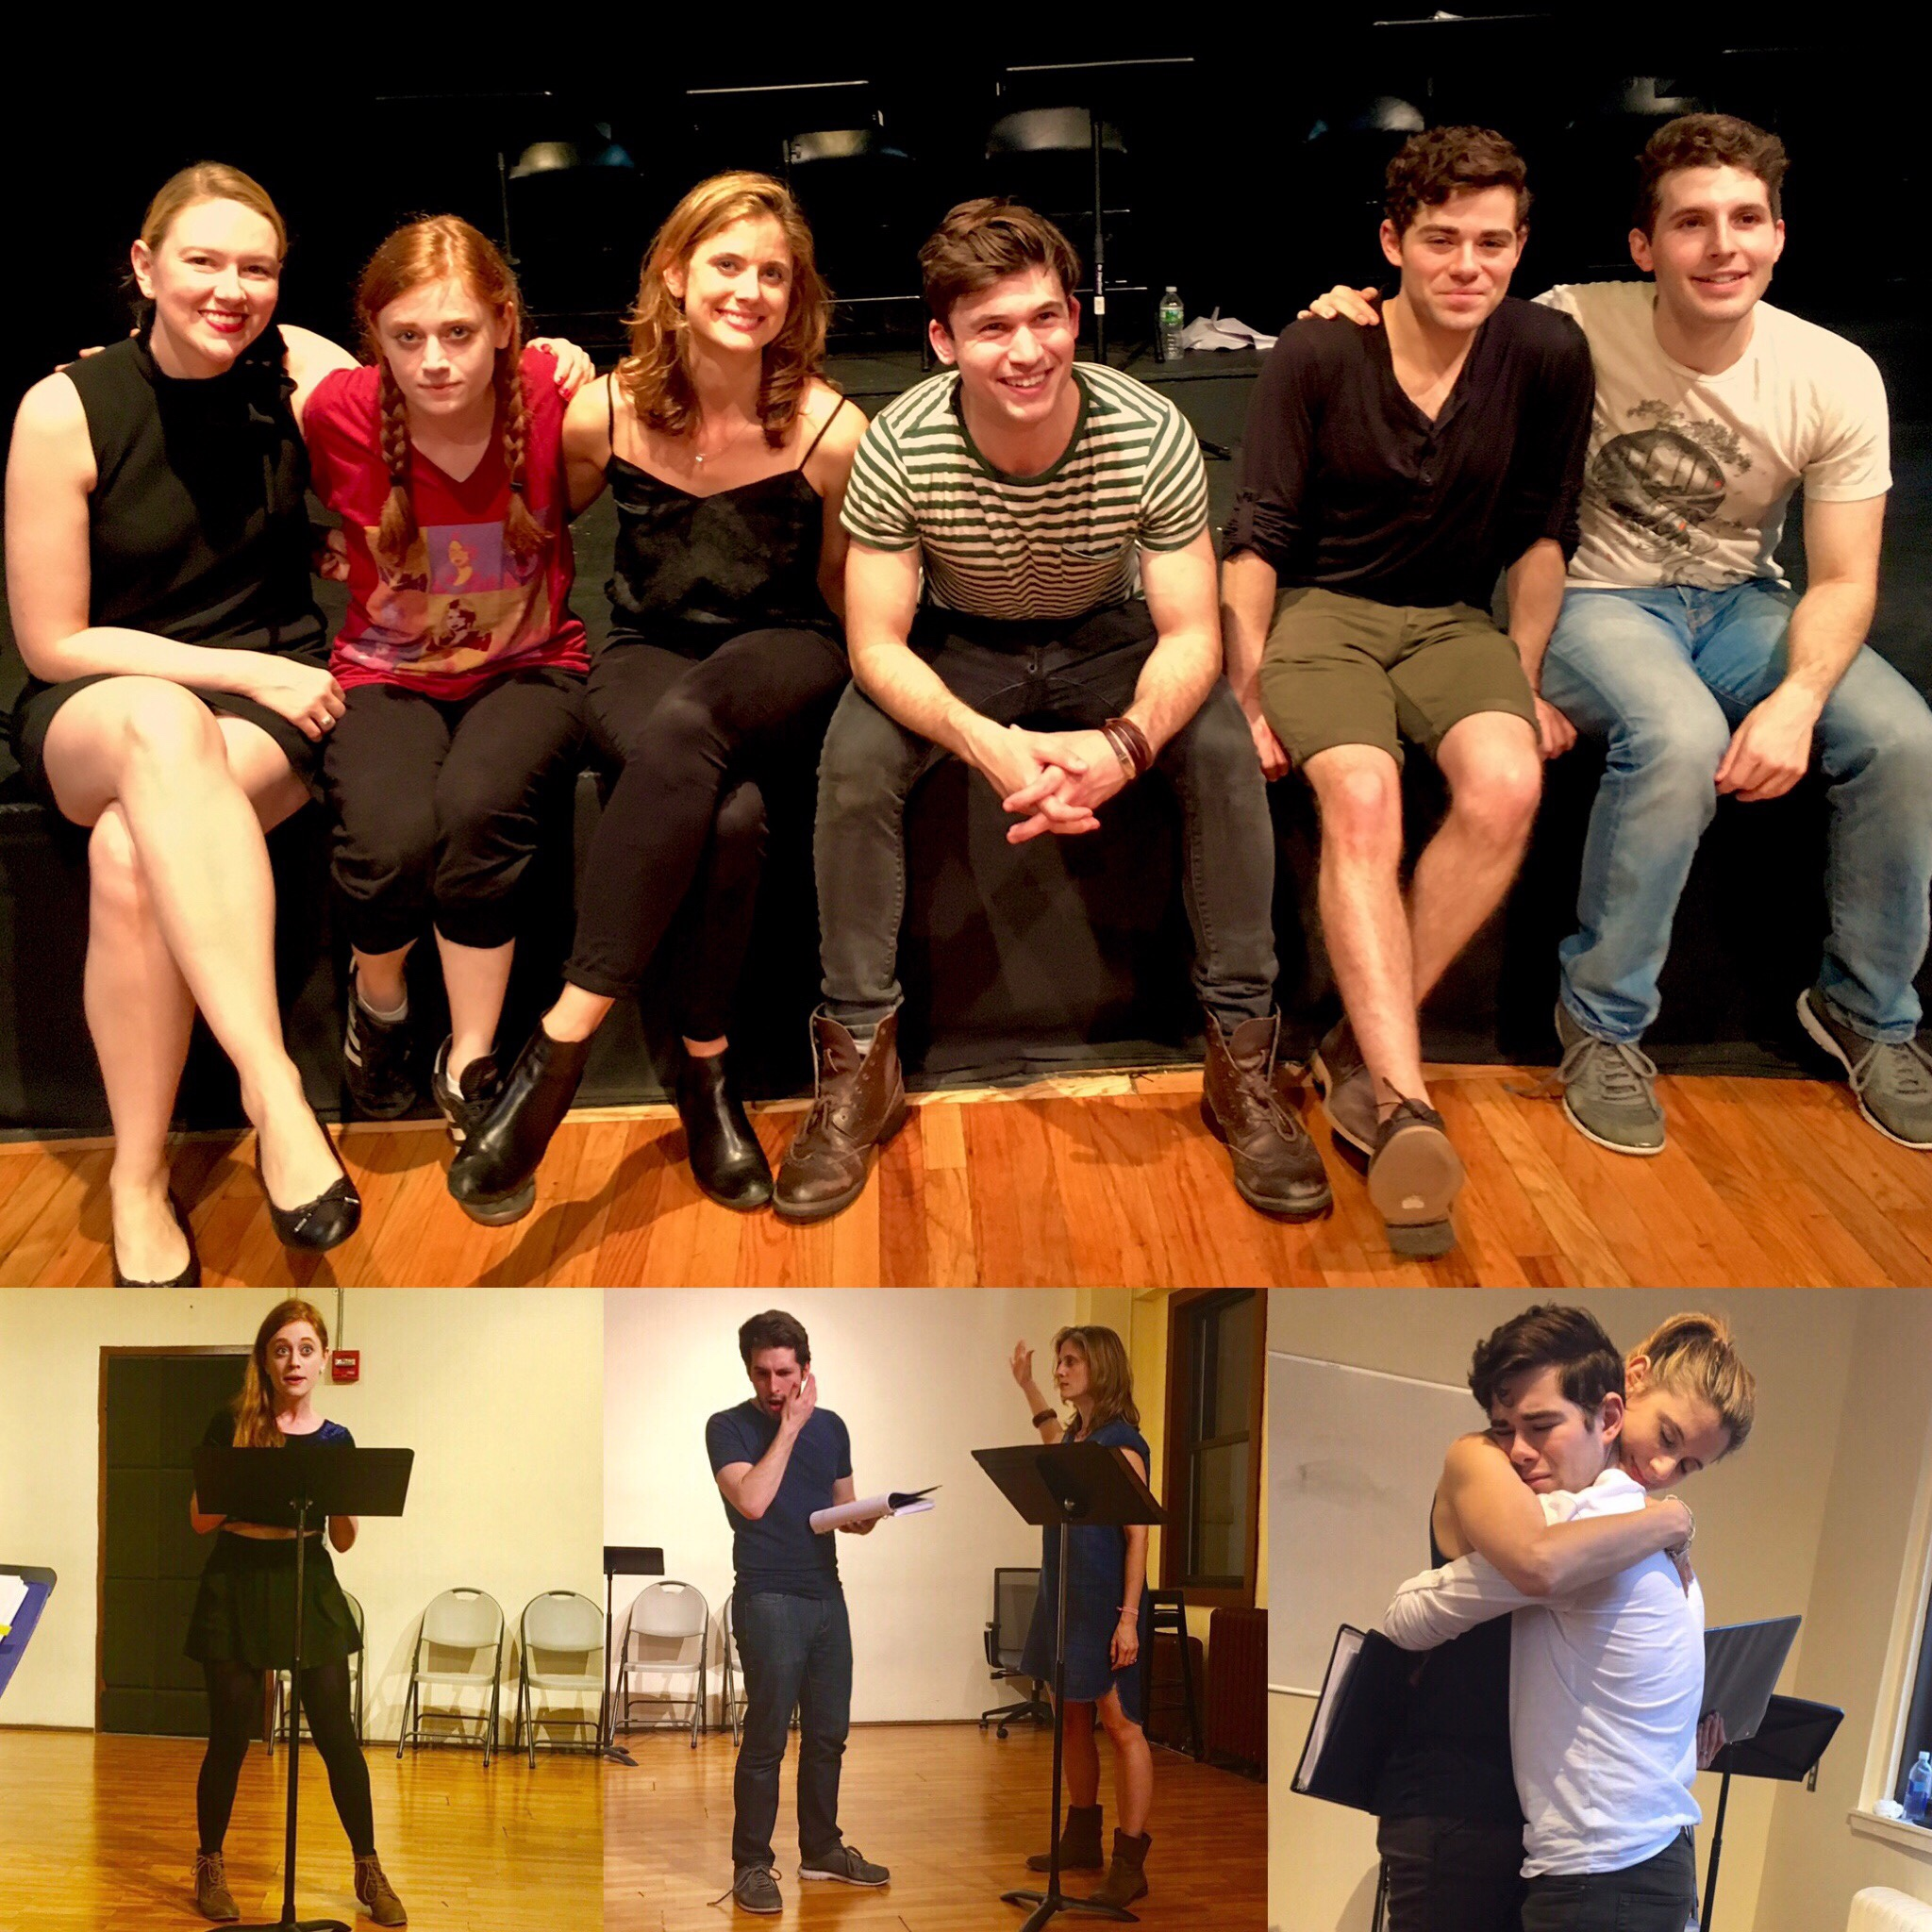 Top: (from L) Charity Schubert (Stage Directions), Susannah Perkins (Gertrude), Elizabeth Inghram (Lang), Marrick Smith (Ross), Misha Osherovich (Georgie), and Ryan Molloy (Phillip). Bottom: (L cube) Susannah Perkins, (Center cube) Ryan Molloy (L) and Elizabeth Inghram, (R cube) Elizabeth Inghram embraces Misha Osherovich.